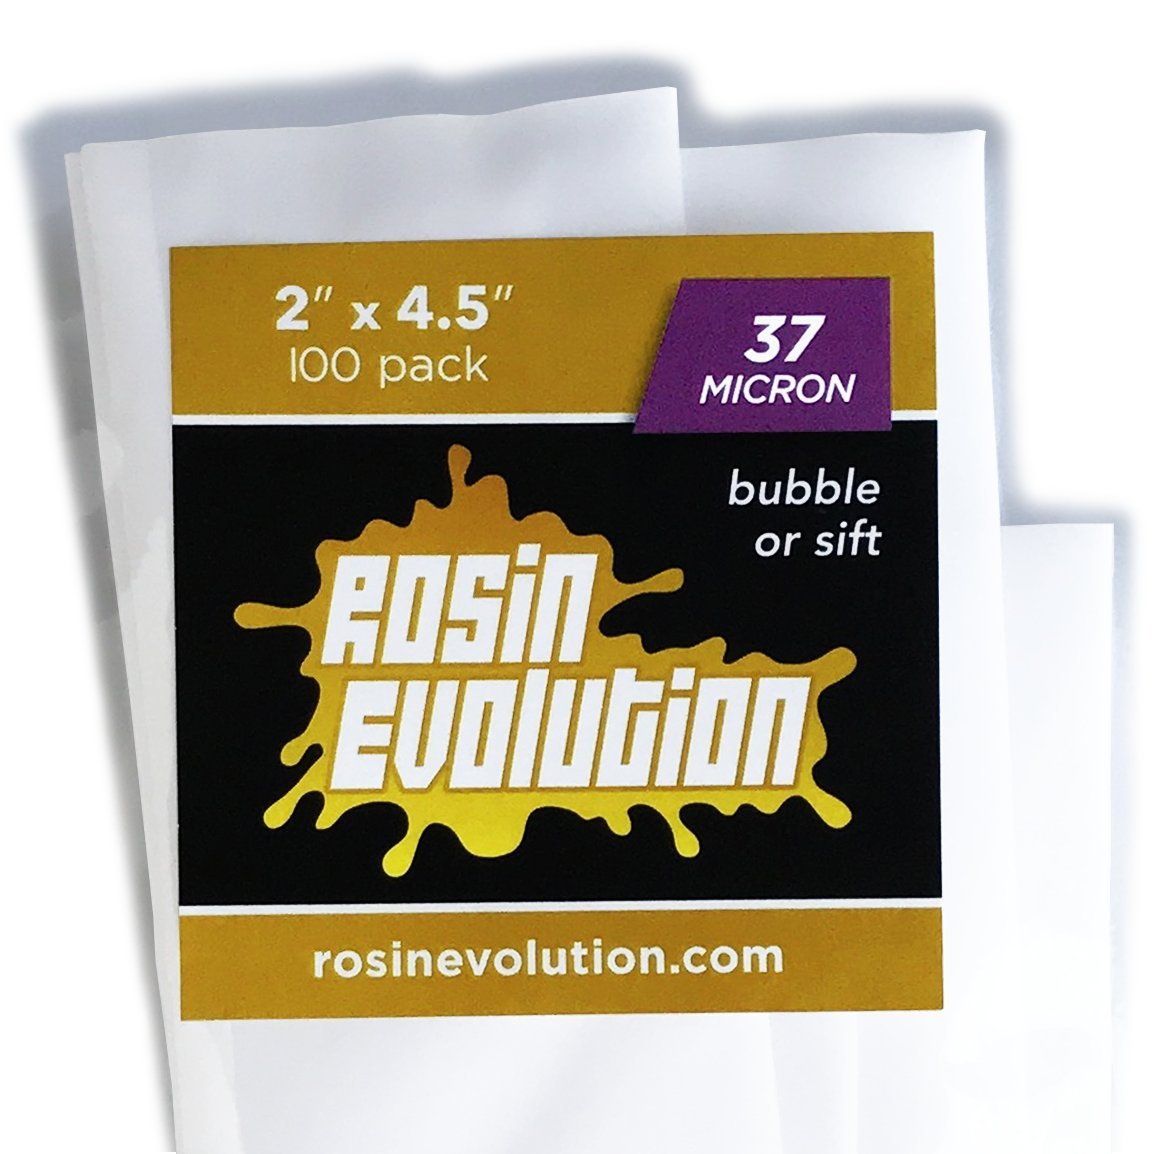 Rosin Evolution Press Bags - 37 micron screens (2'' x 4.5'') - 100 pack by Rosin Evolution